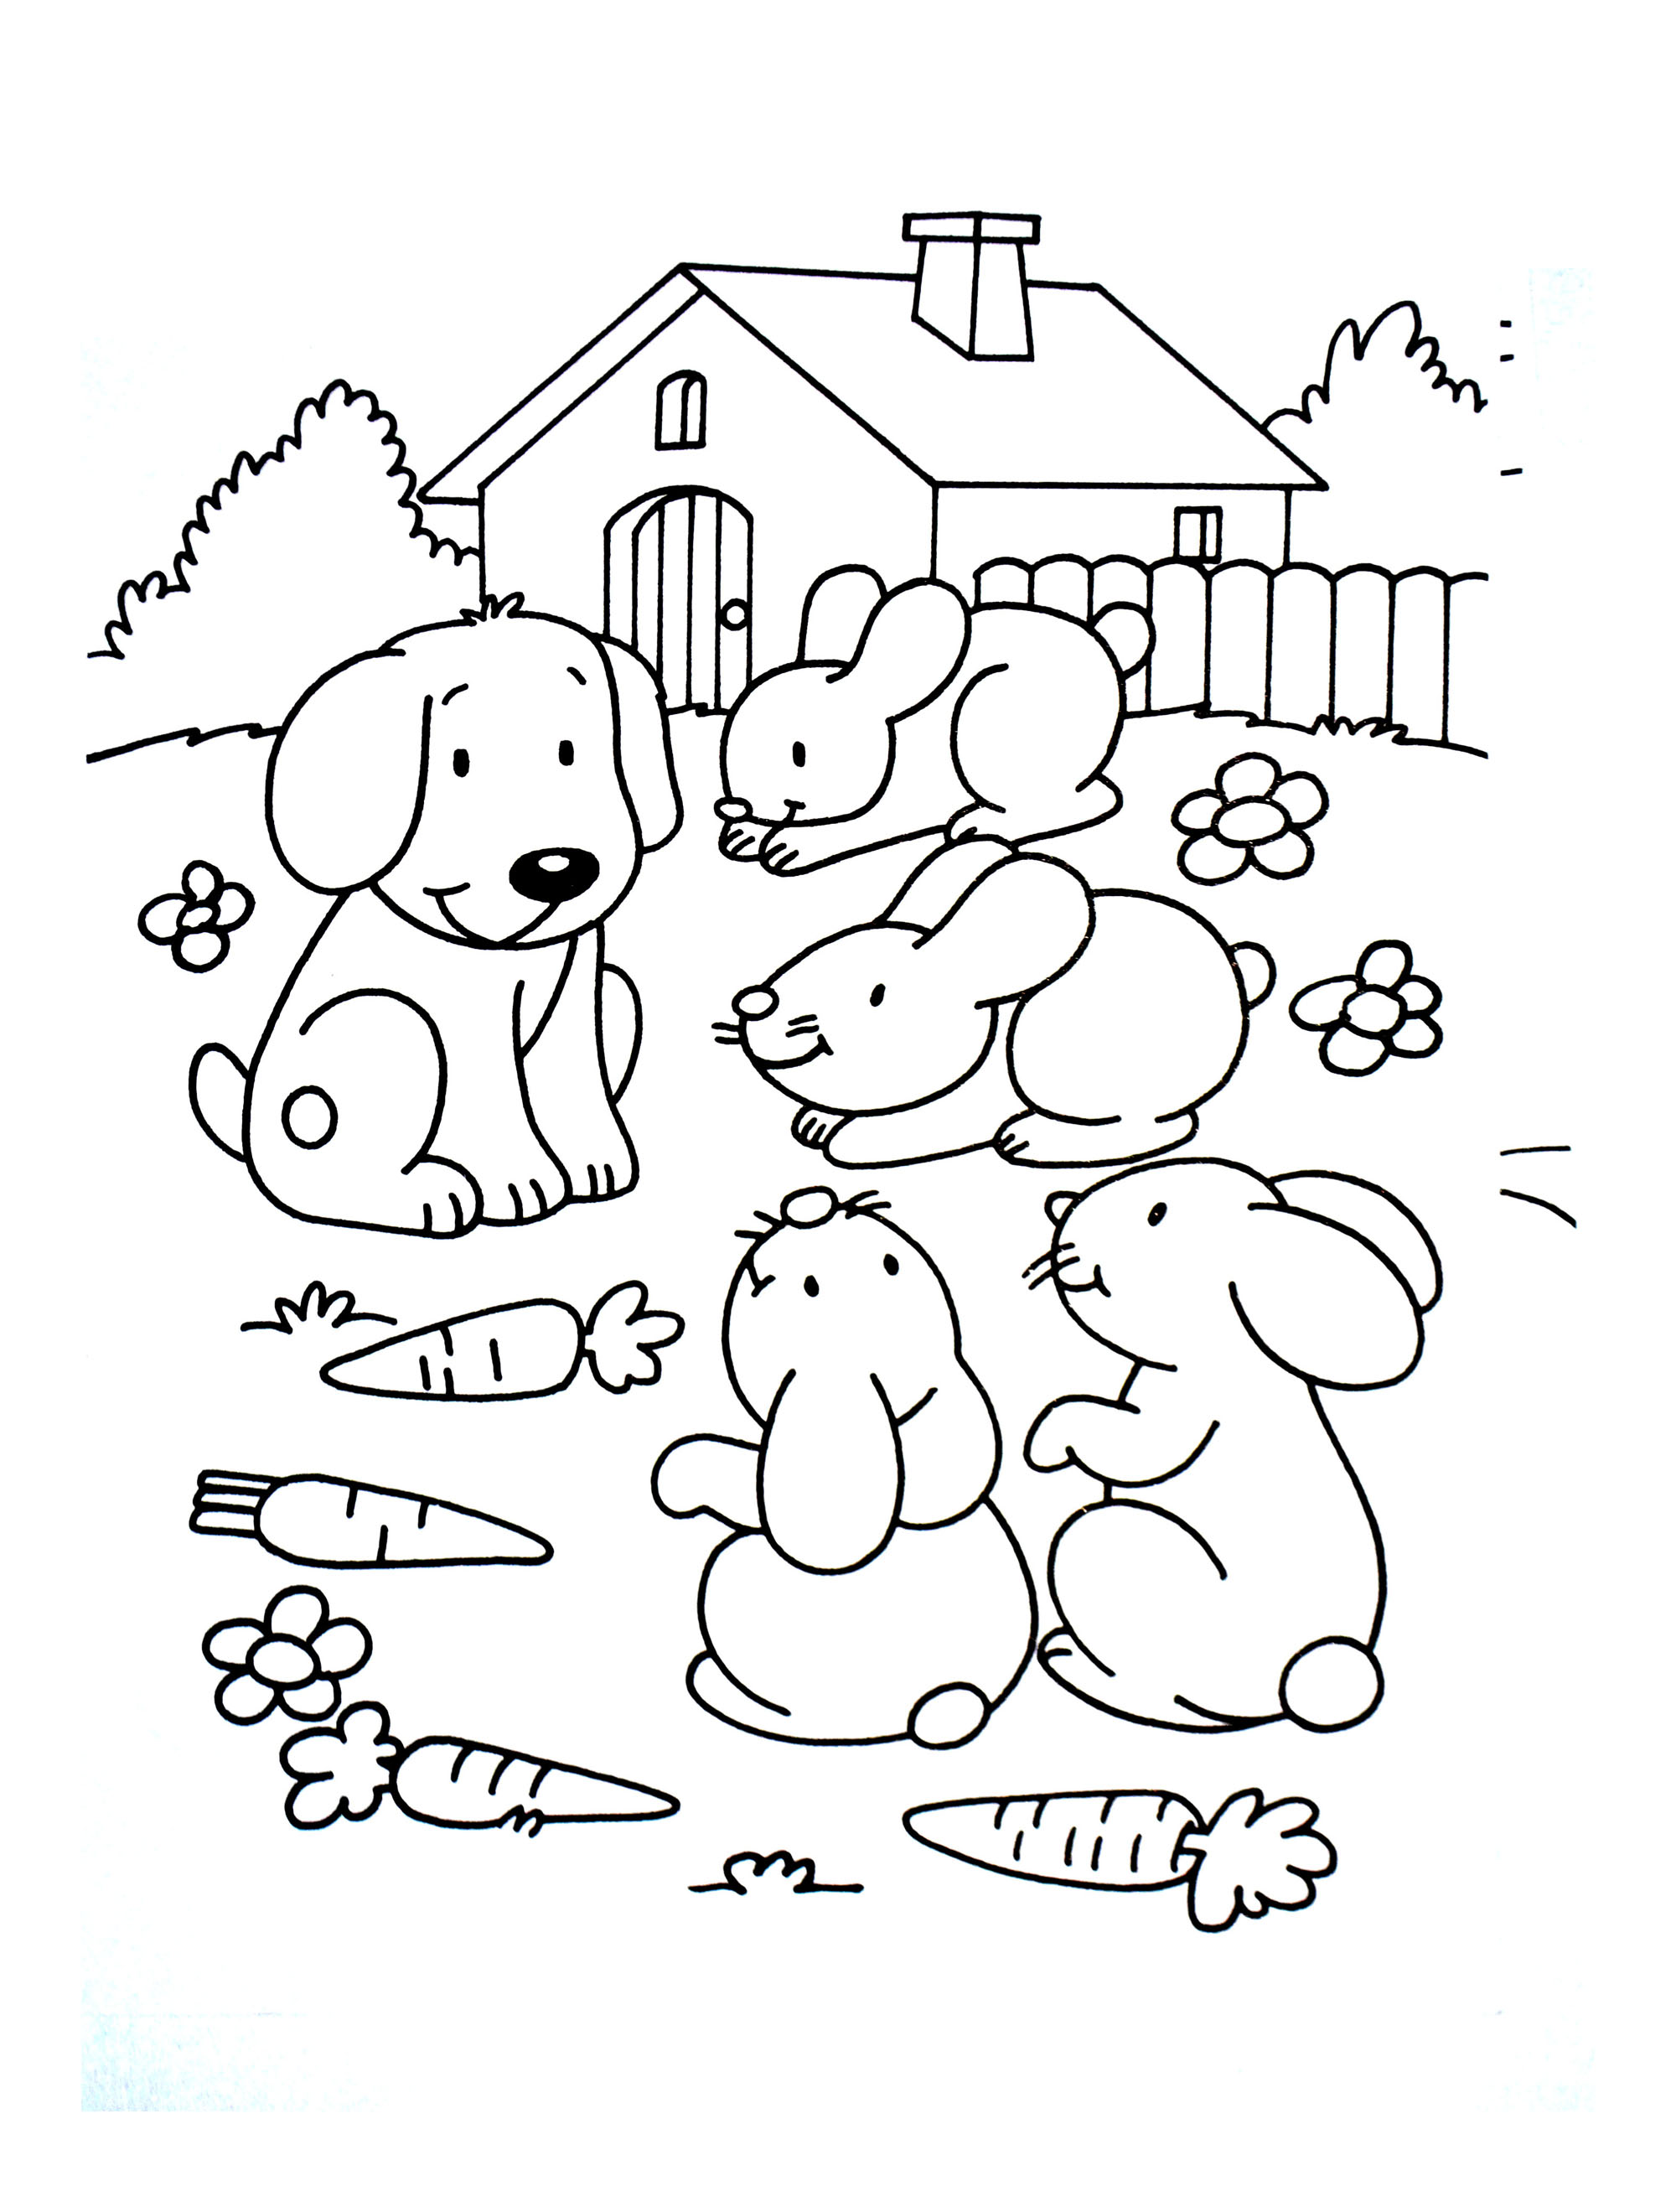 Dog with rabbit friends - Animals Adult Coloring Pages